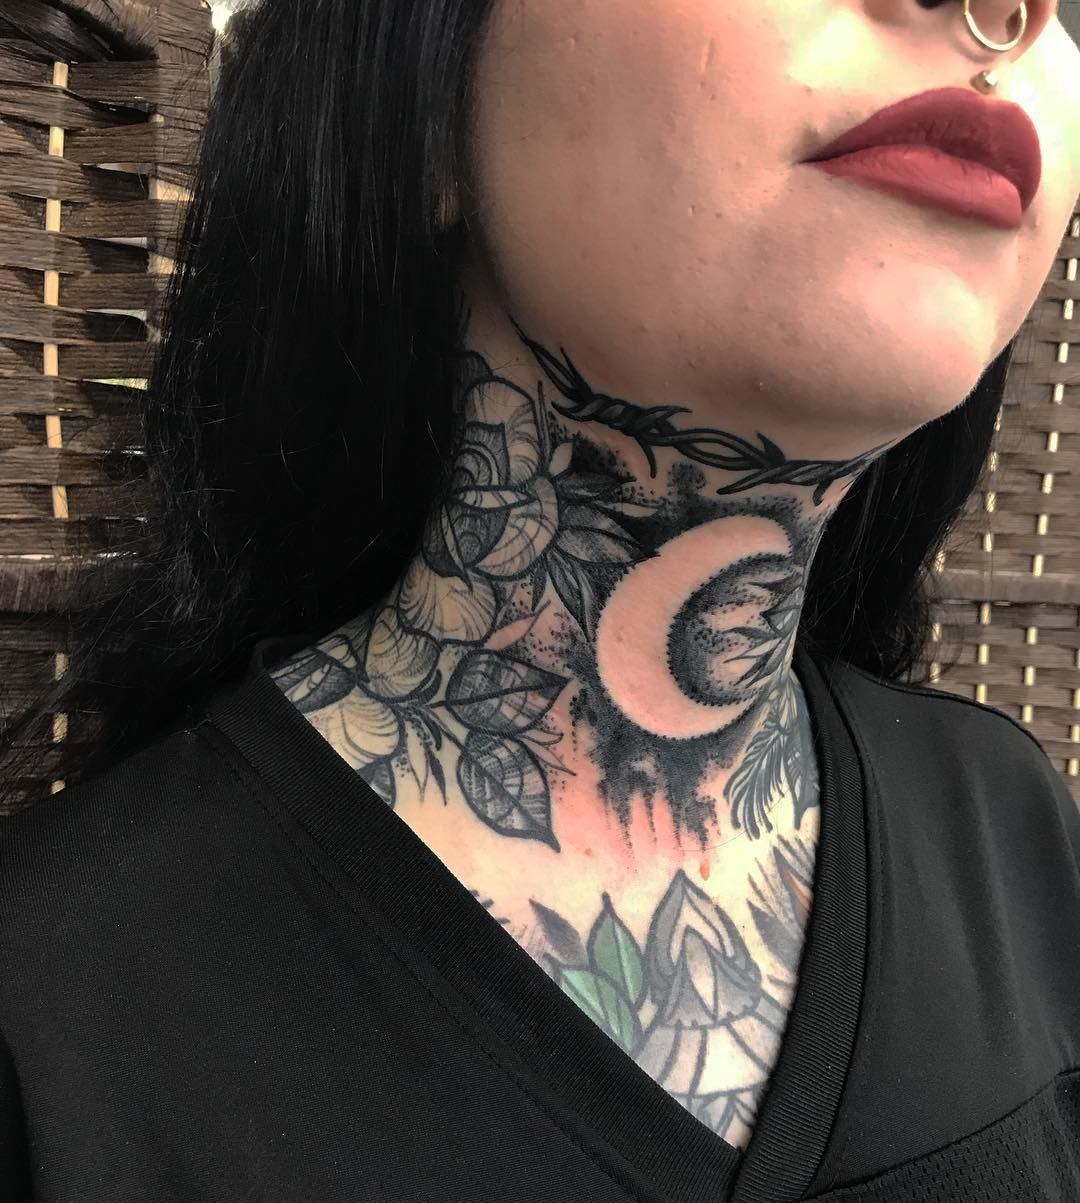 Throat Tattoos Pictures With Images Throat Tattoo Neck Tattoo Neck Tattoos Women